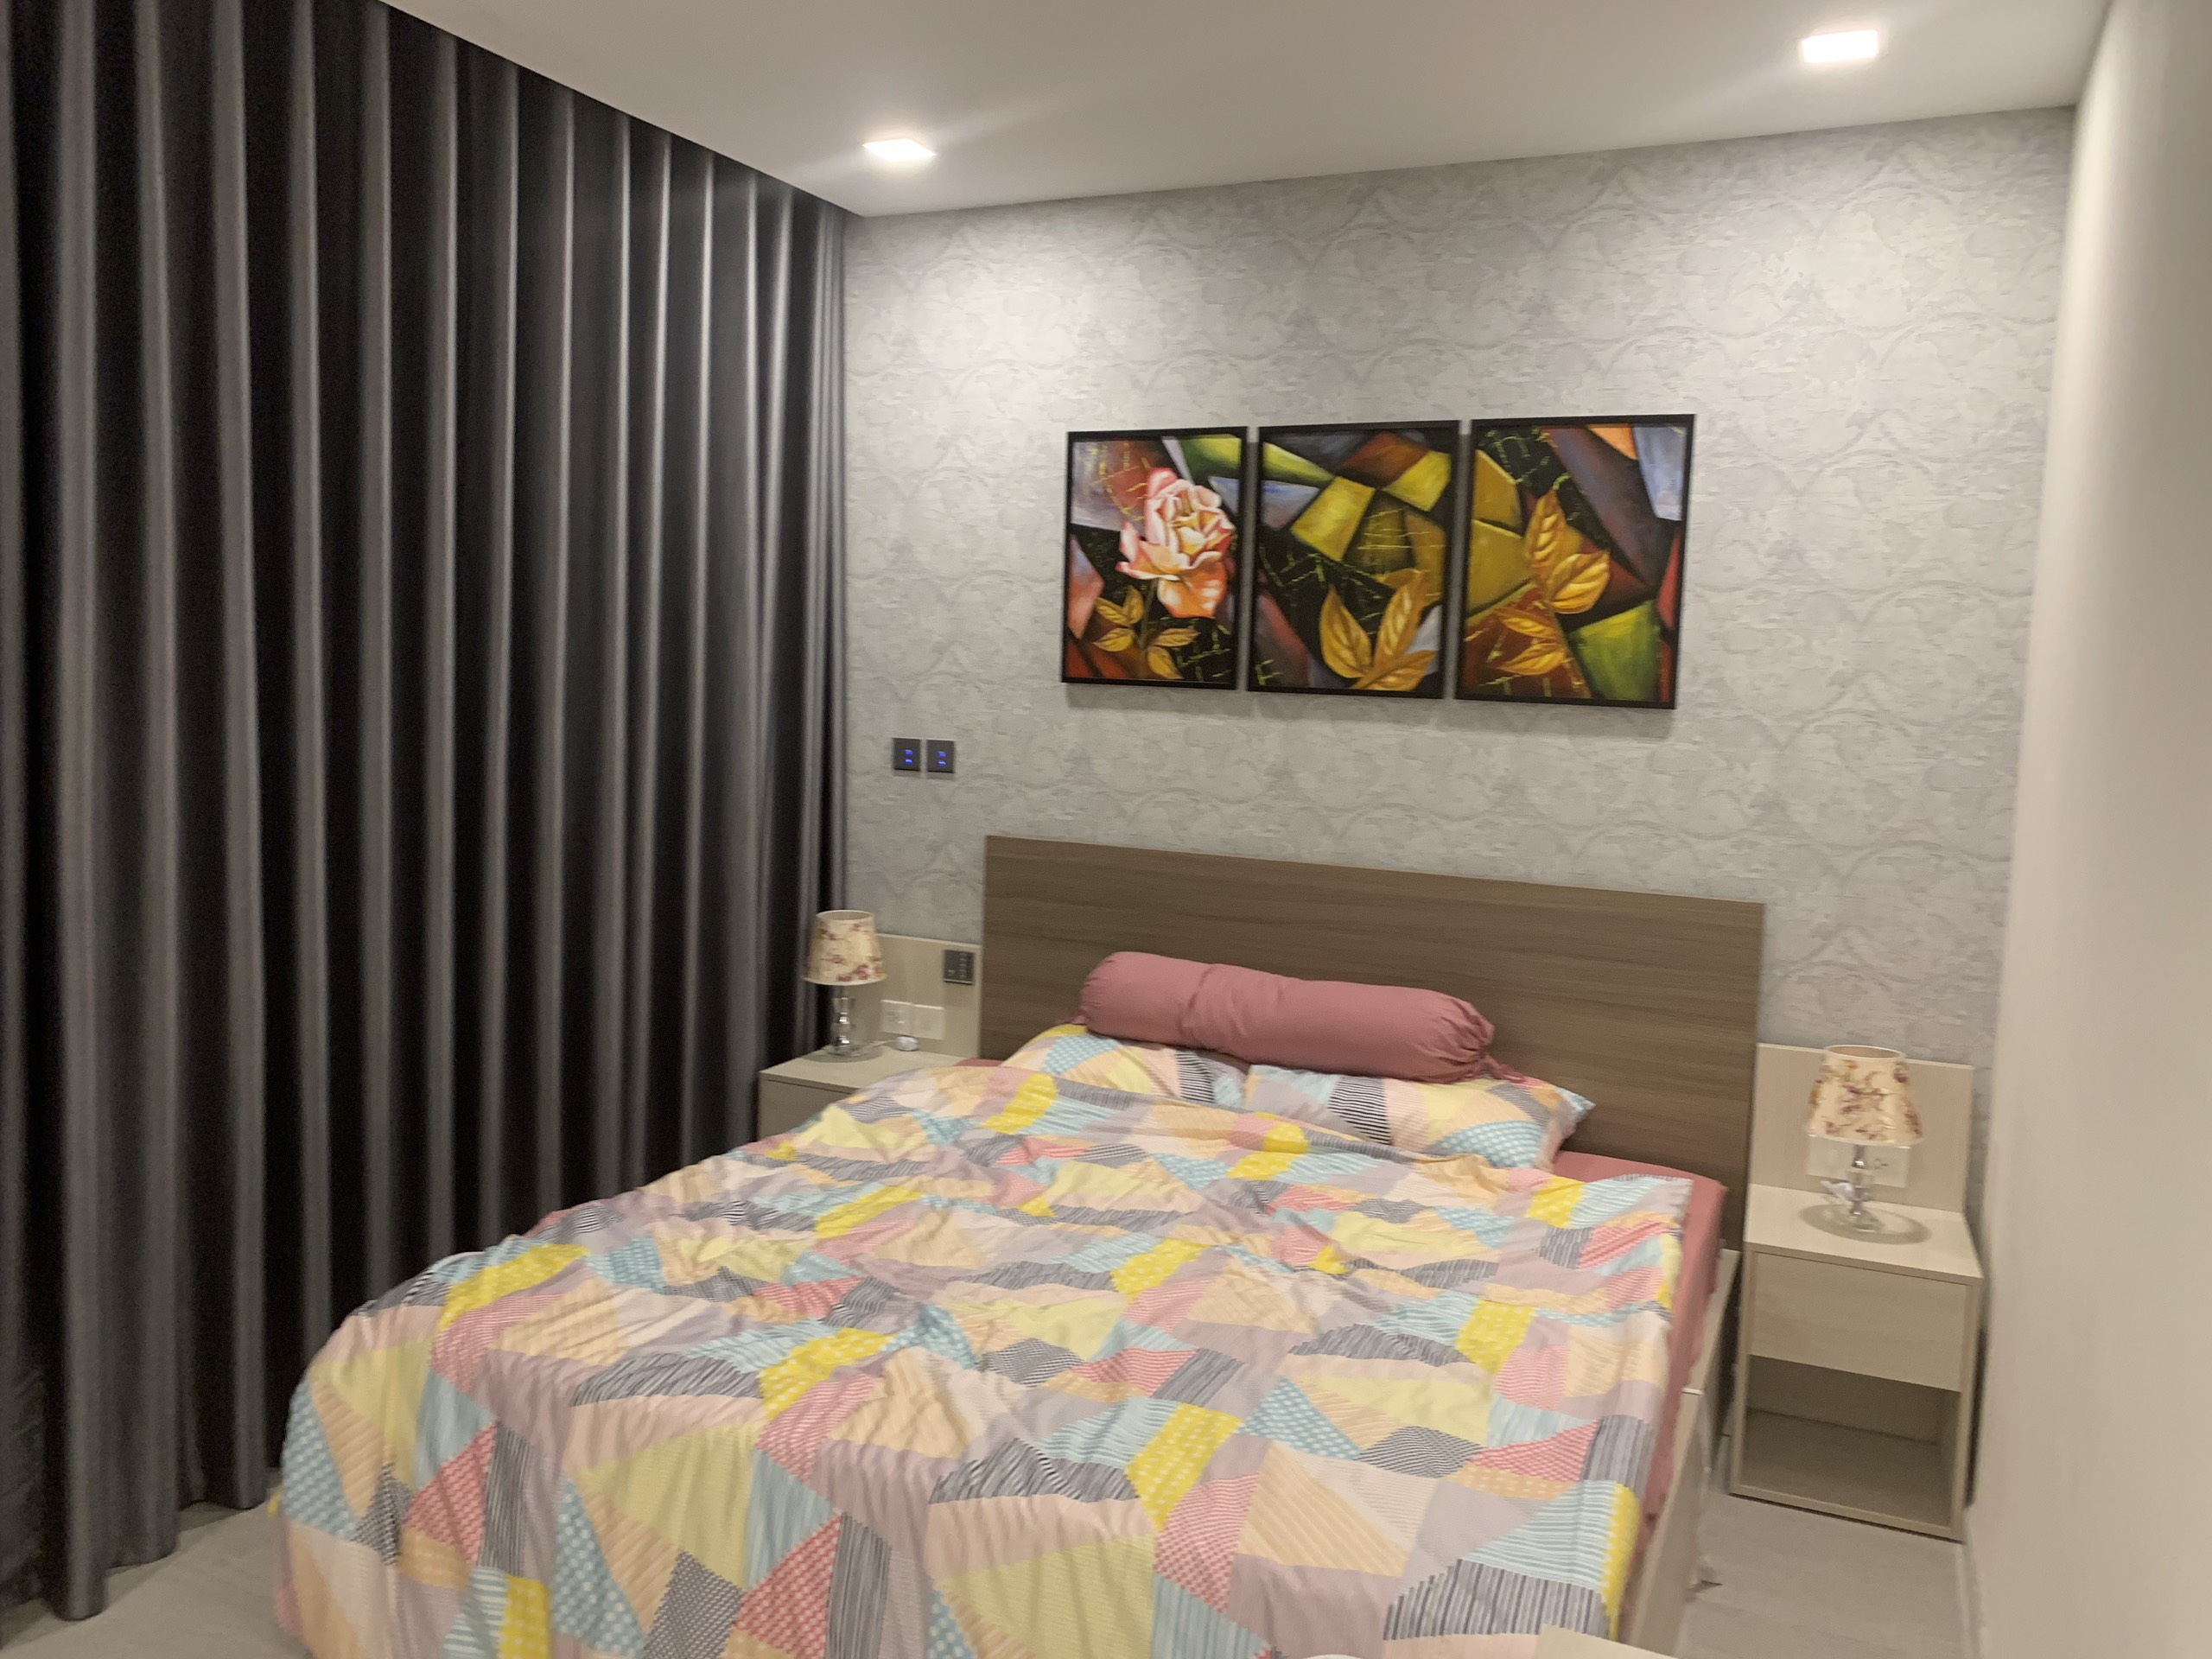 vinhomes golden river apartment for rent in district 1 hcmc D1022483(18)